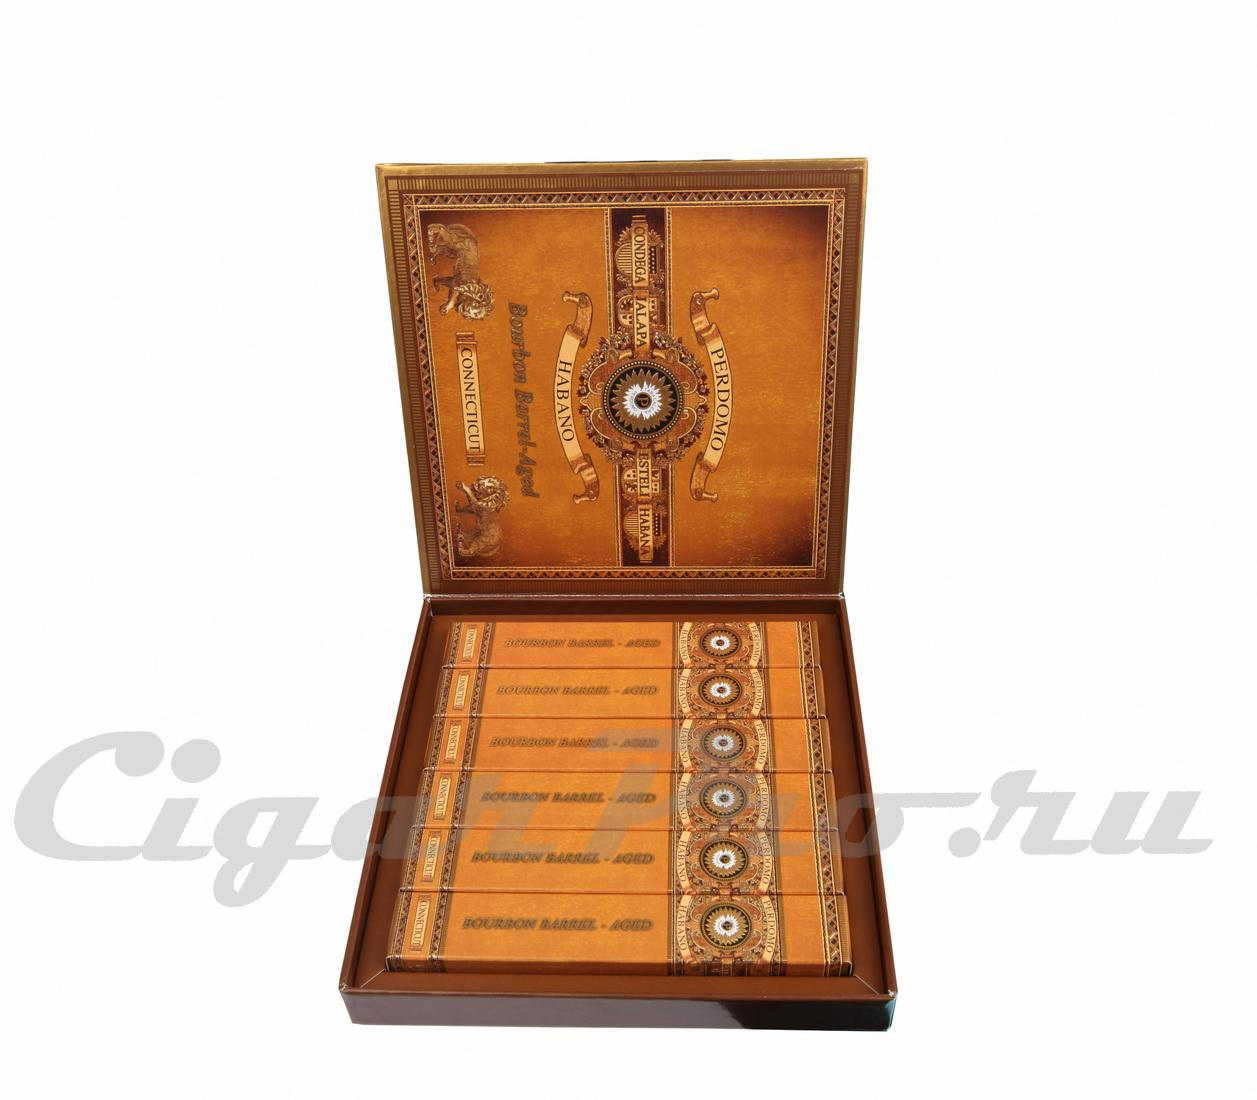 Perdomo Habano Bourbon Barrel-Aged Epicure Connecticut Gift Set